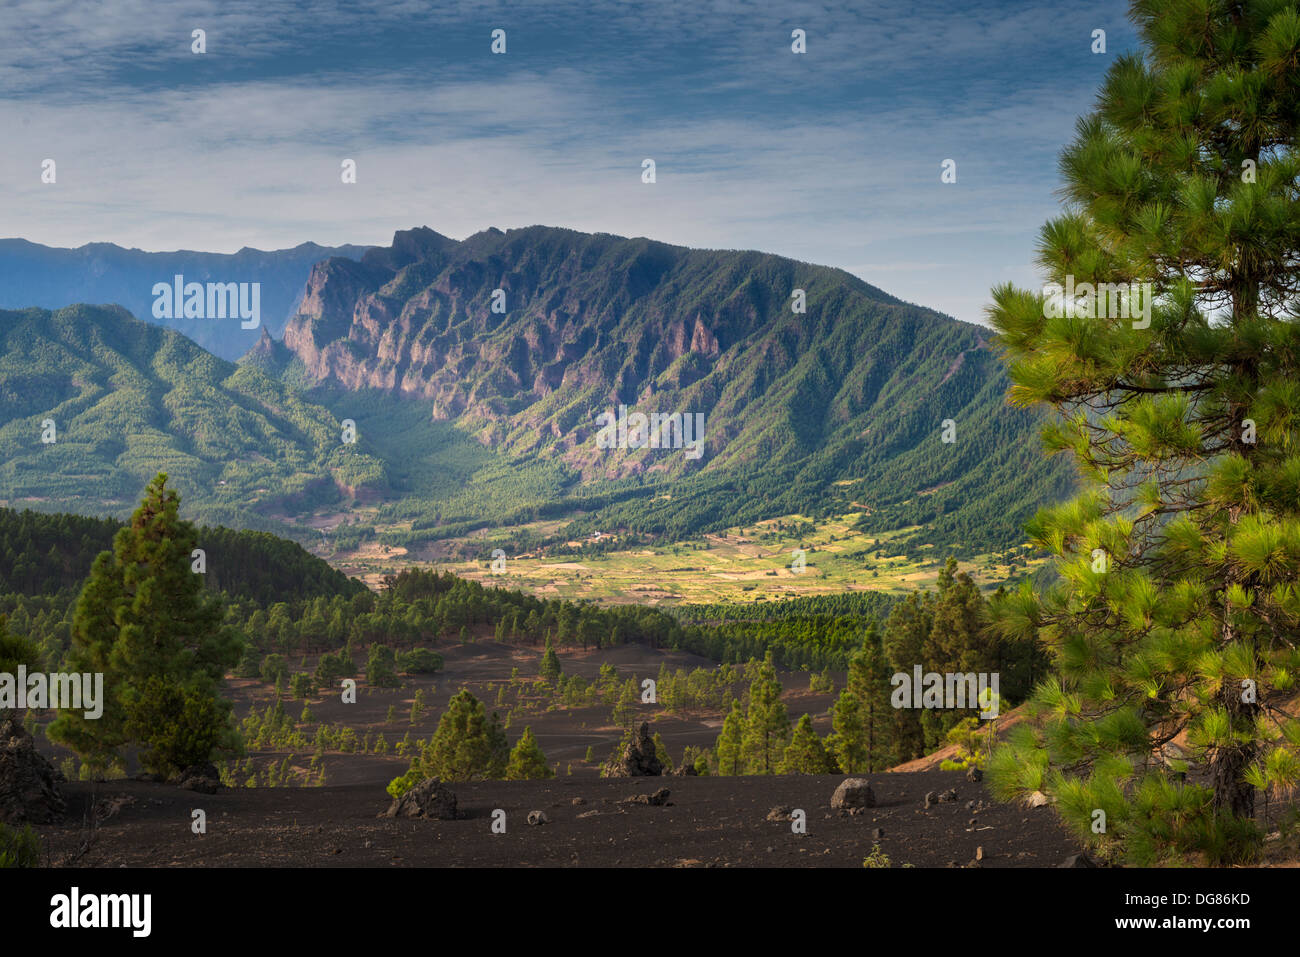 View towards the Cumbre Nueva mountain ridge, with the eastern end of Pico Bejenado volcano middle left, from Llano - Stock Image